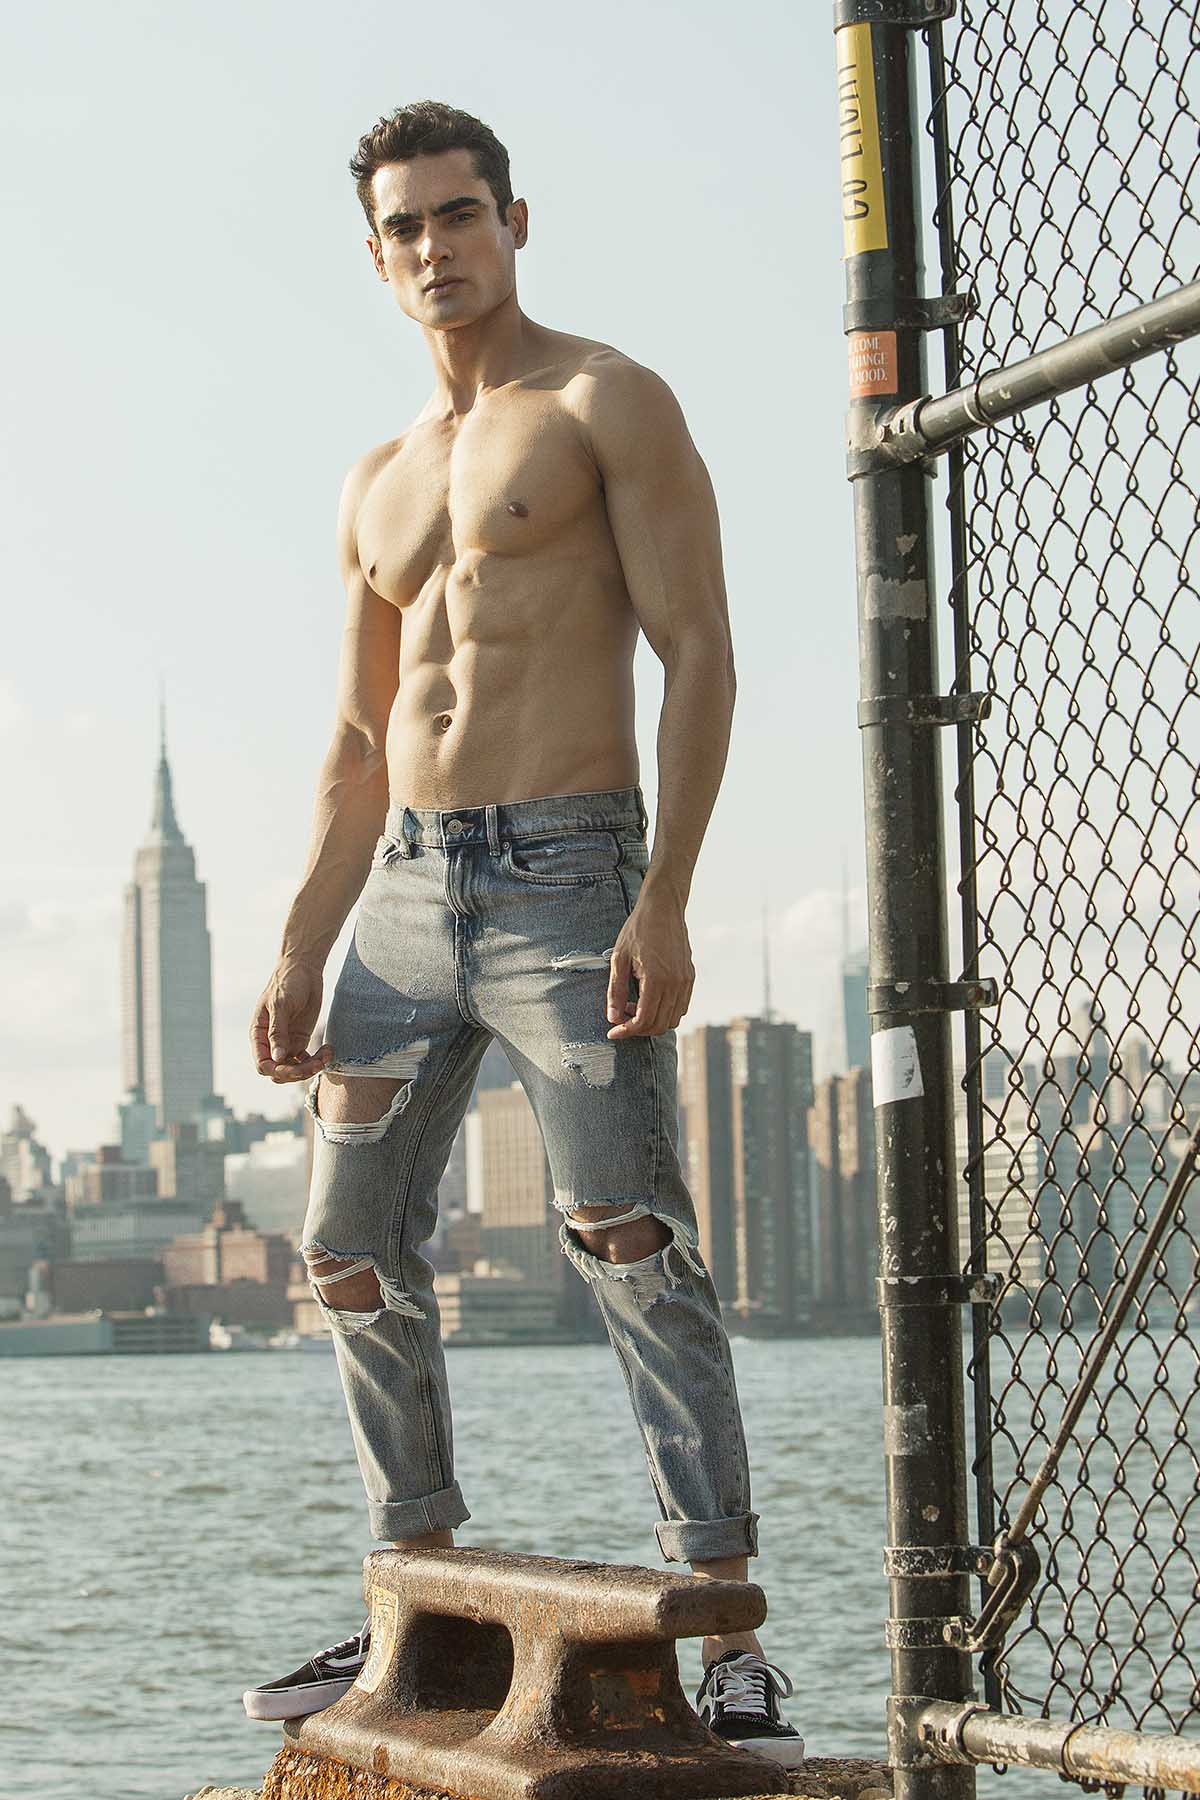 Felipe Santos by Giulio Cunico for Brazilian Male Model